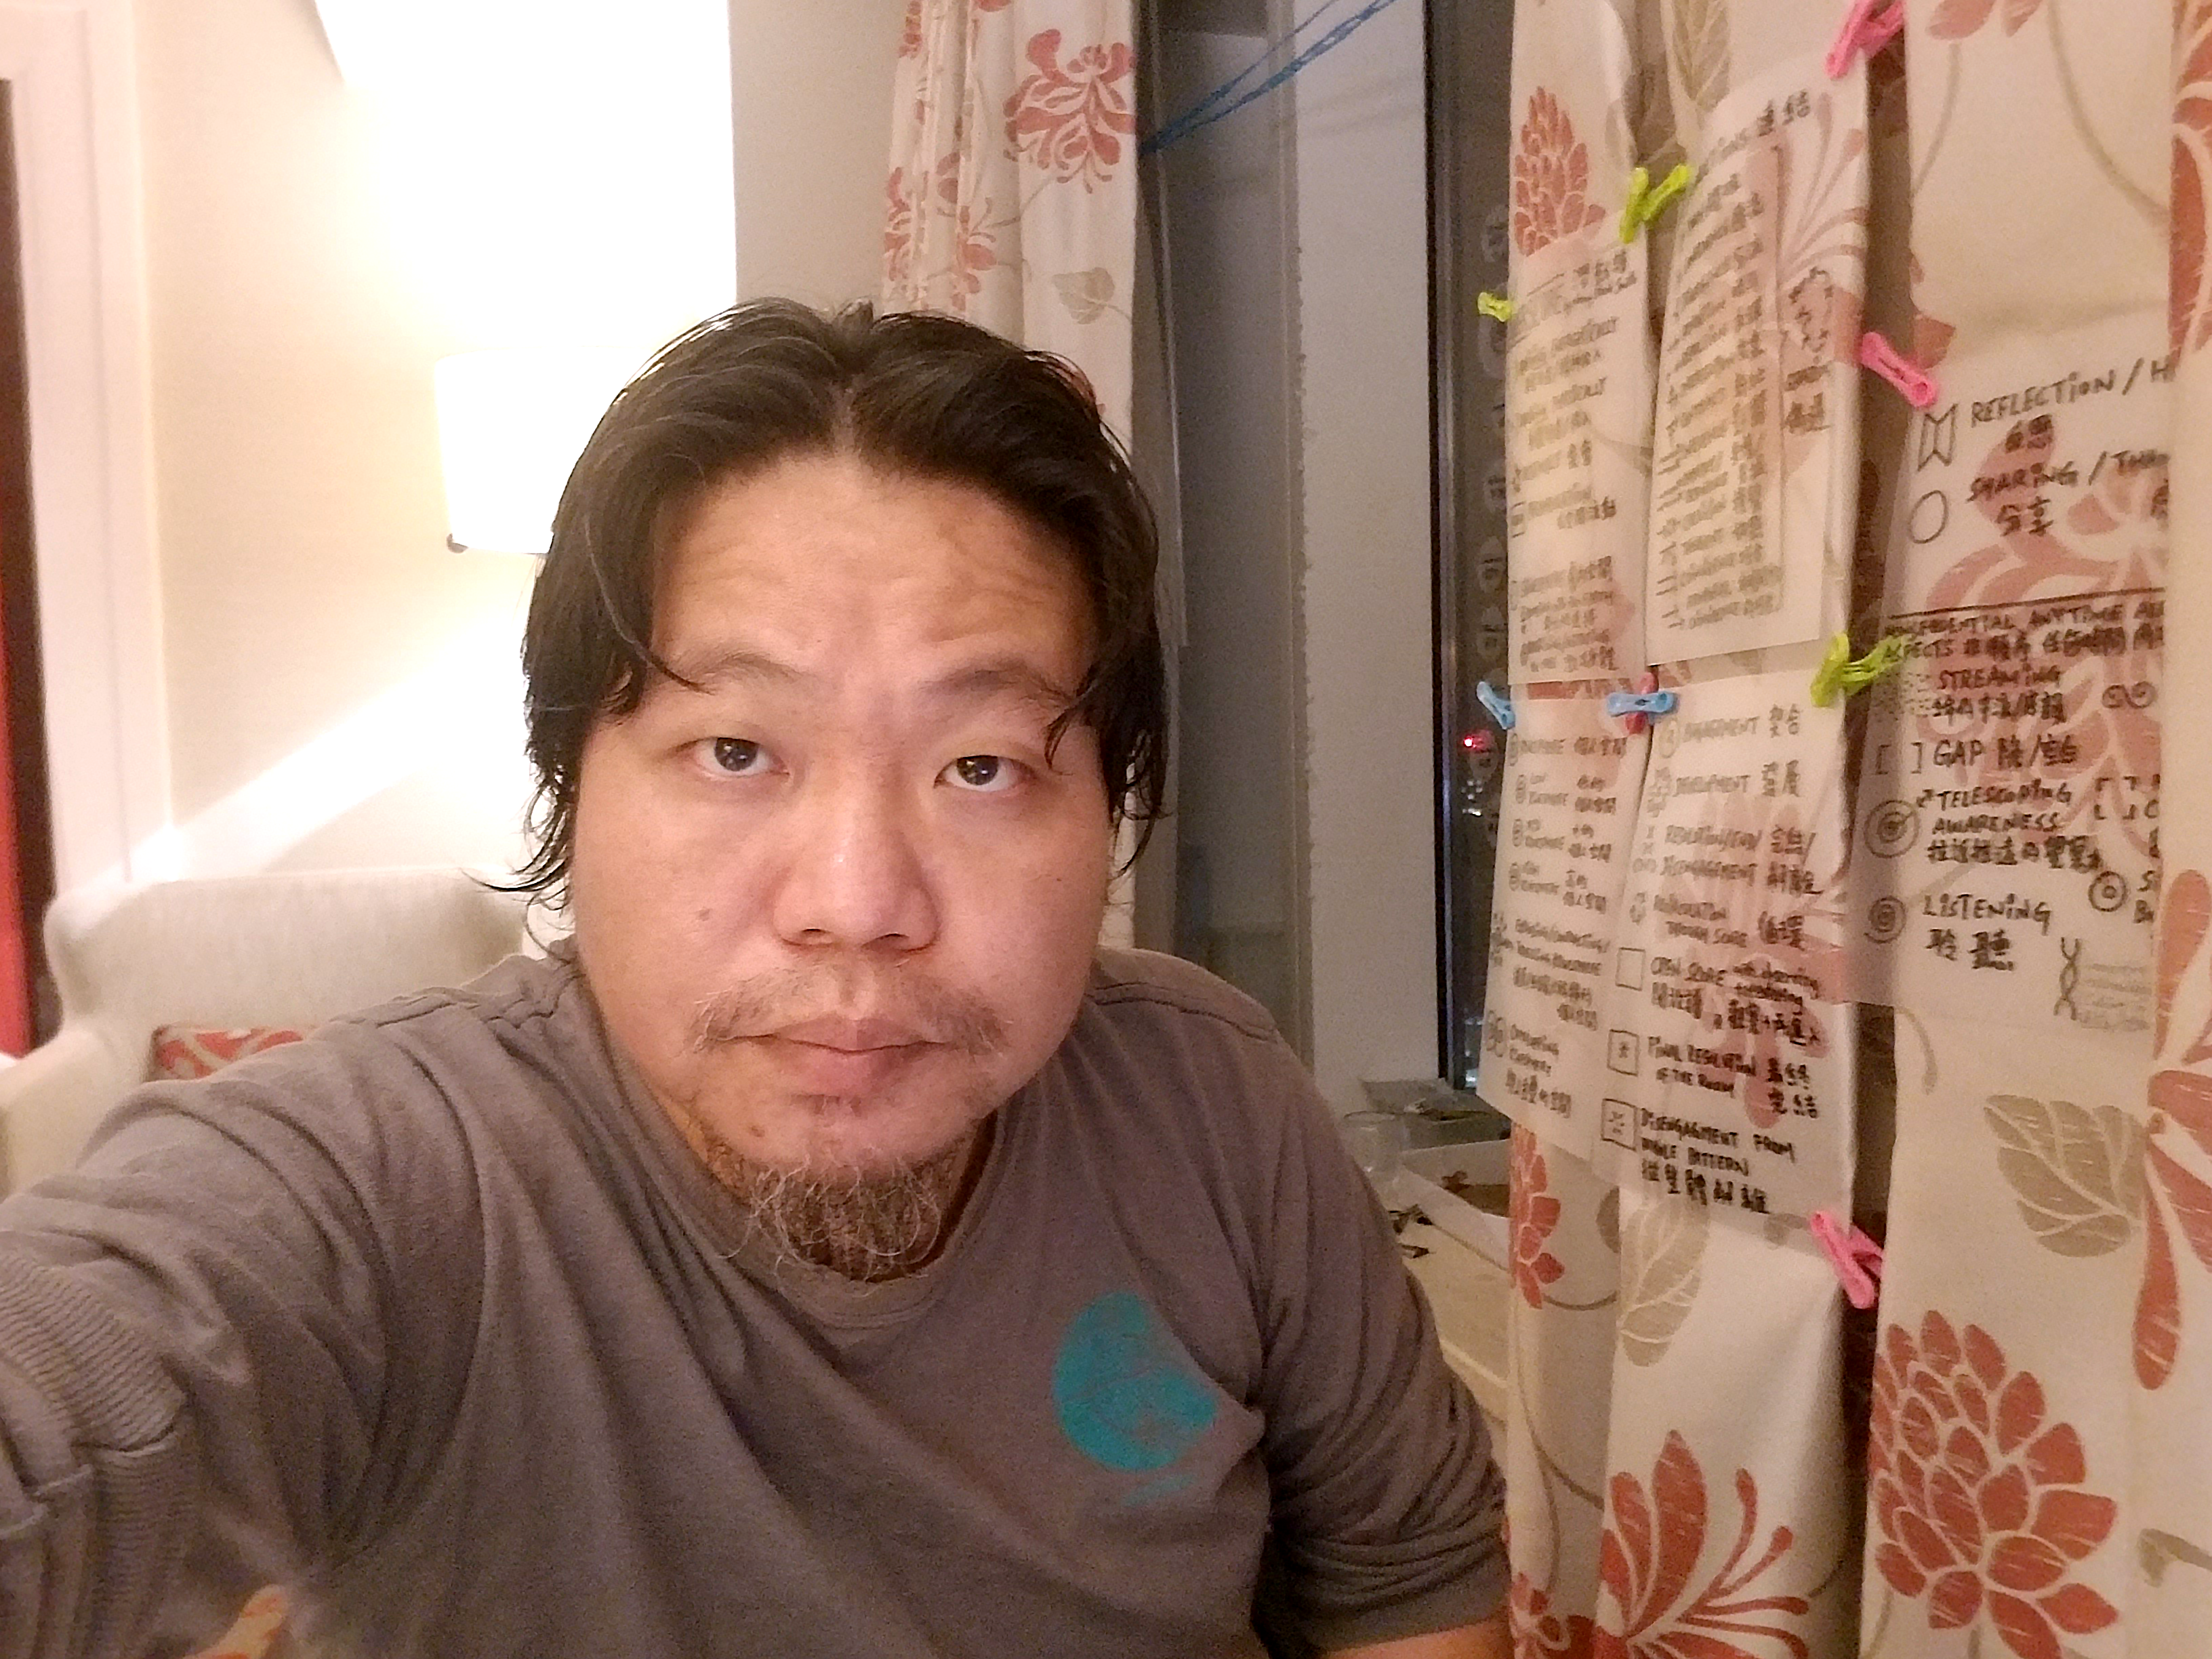 Yuenjie Maru found ways to stay occupied and productive during his hotel quarantine